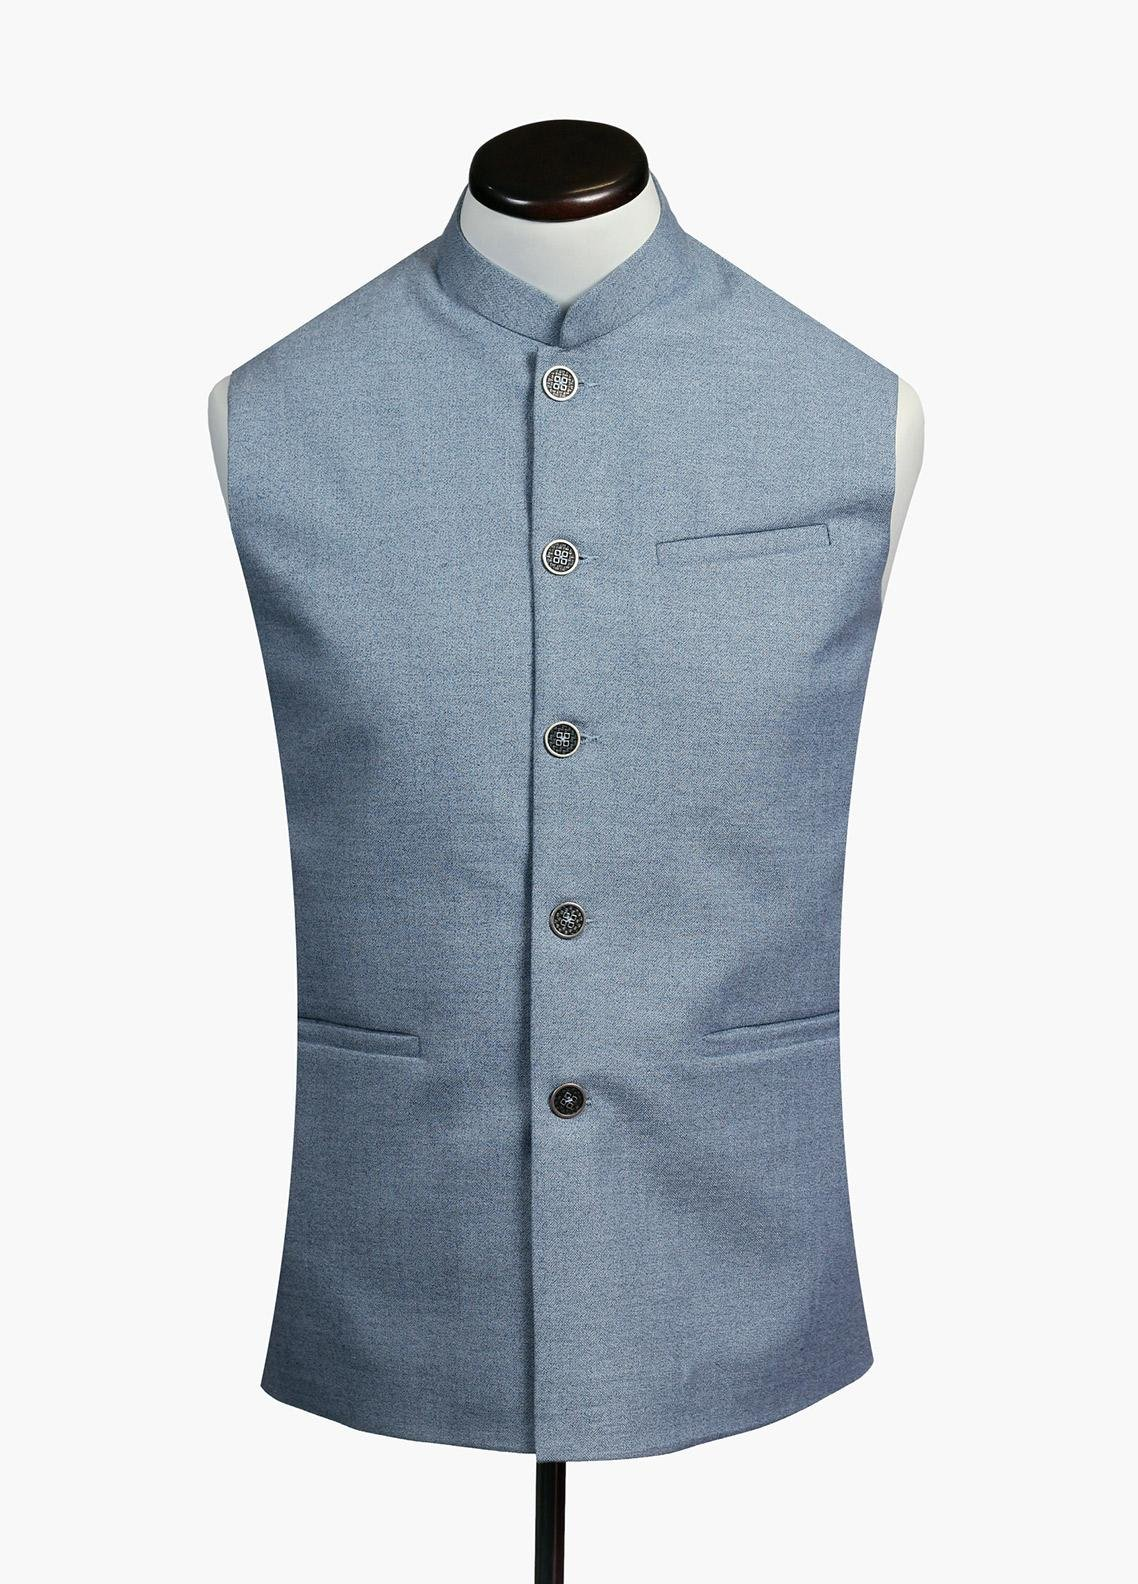 Brumano Cotton Formal Waistcoat for Men - Sky Blue BRM-732